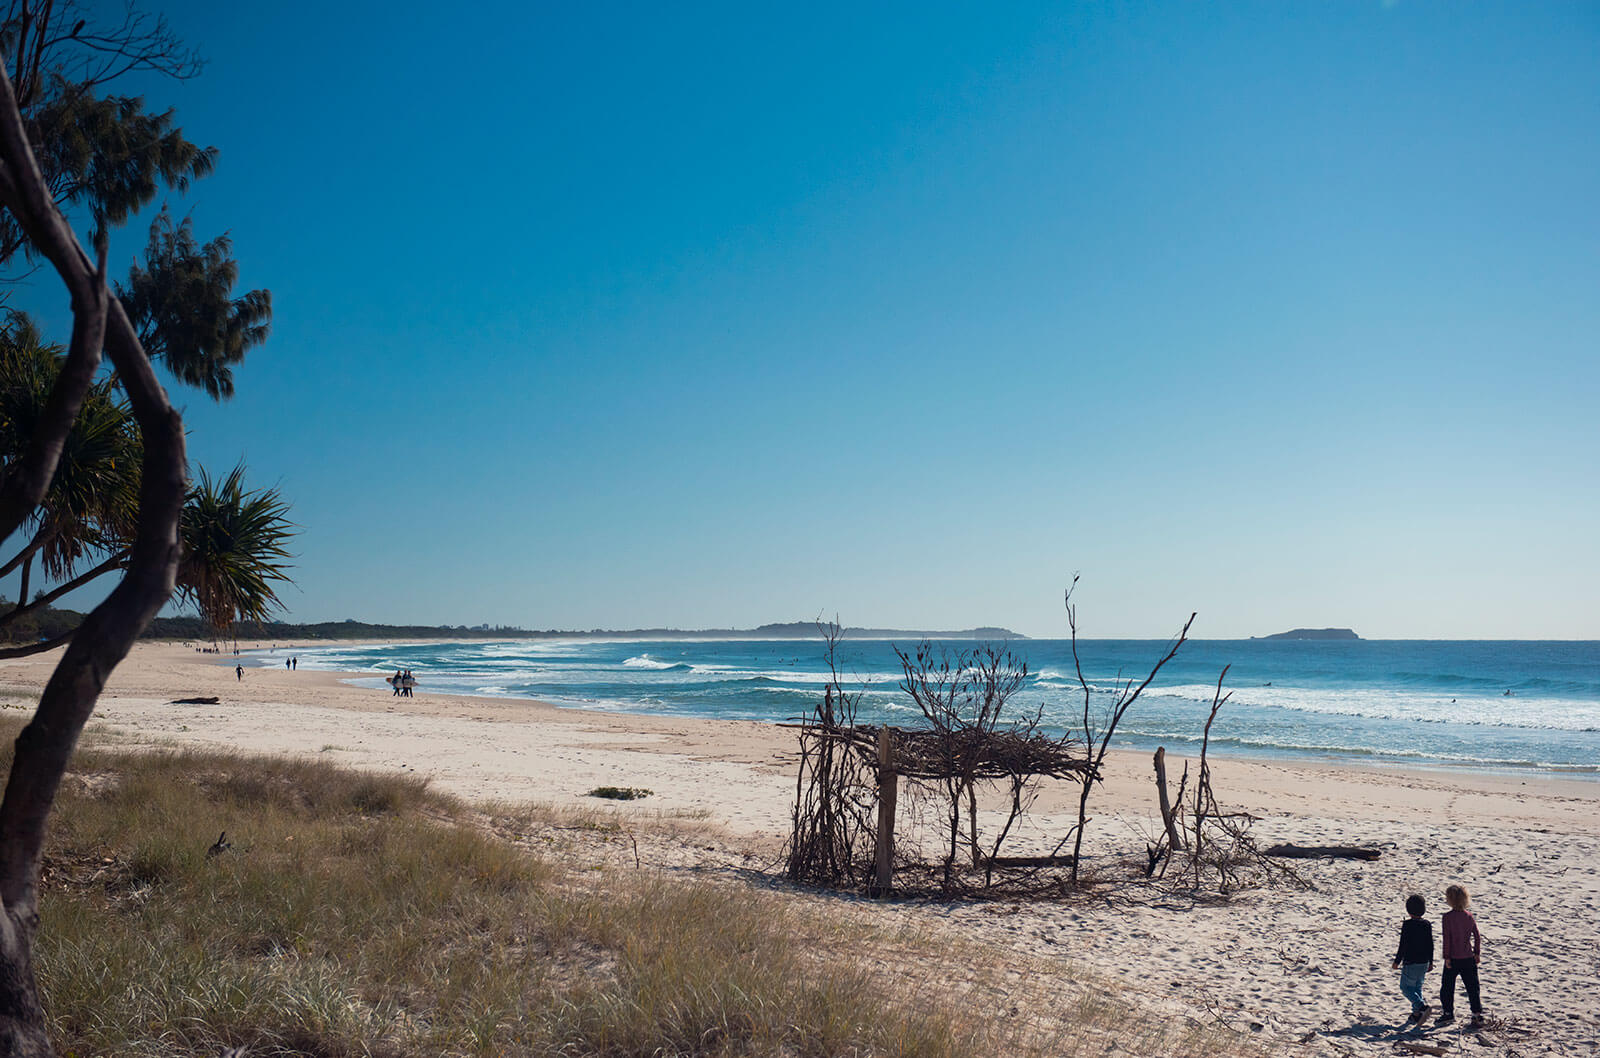 Kingscliff Beach